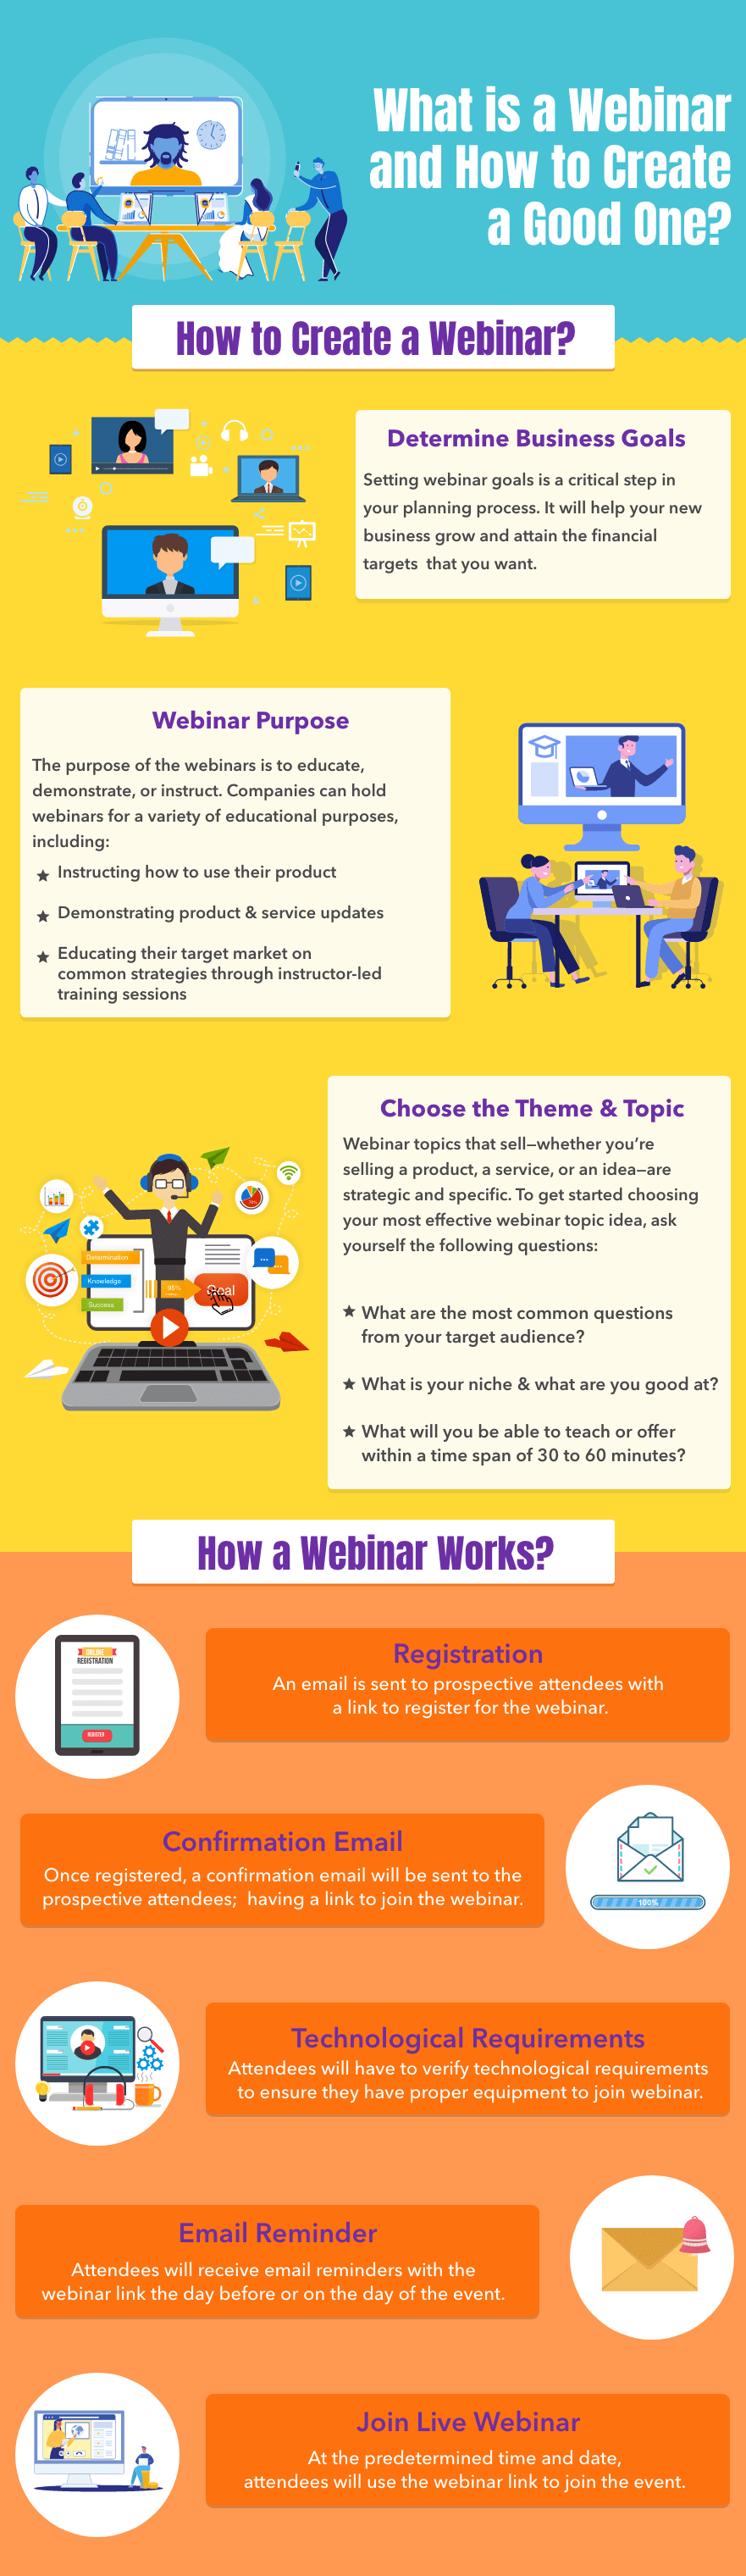 What is a webinar and how to create a good one